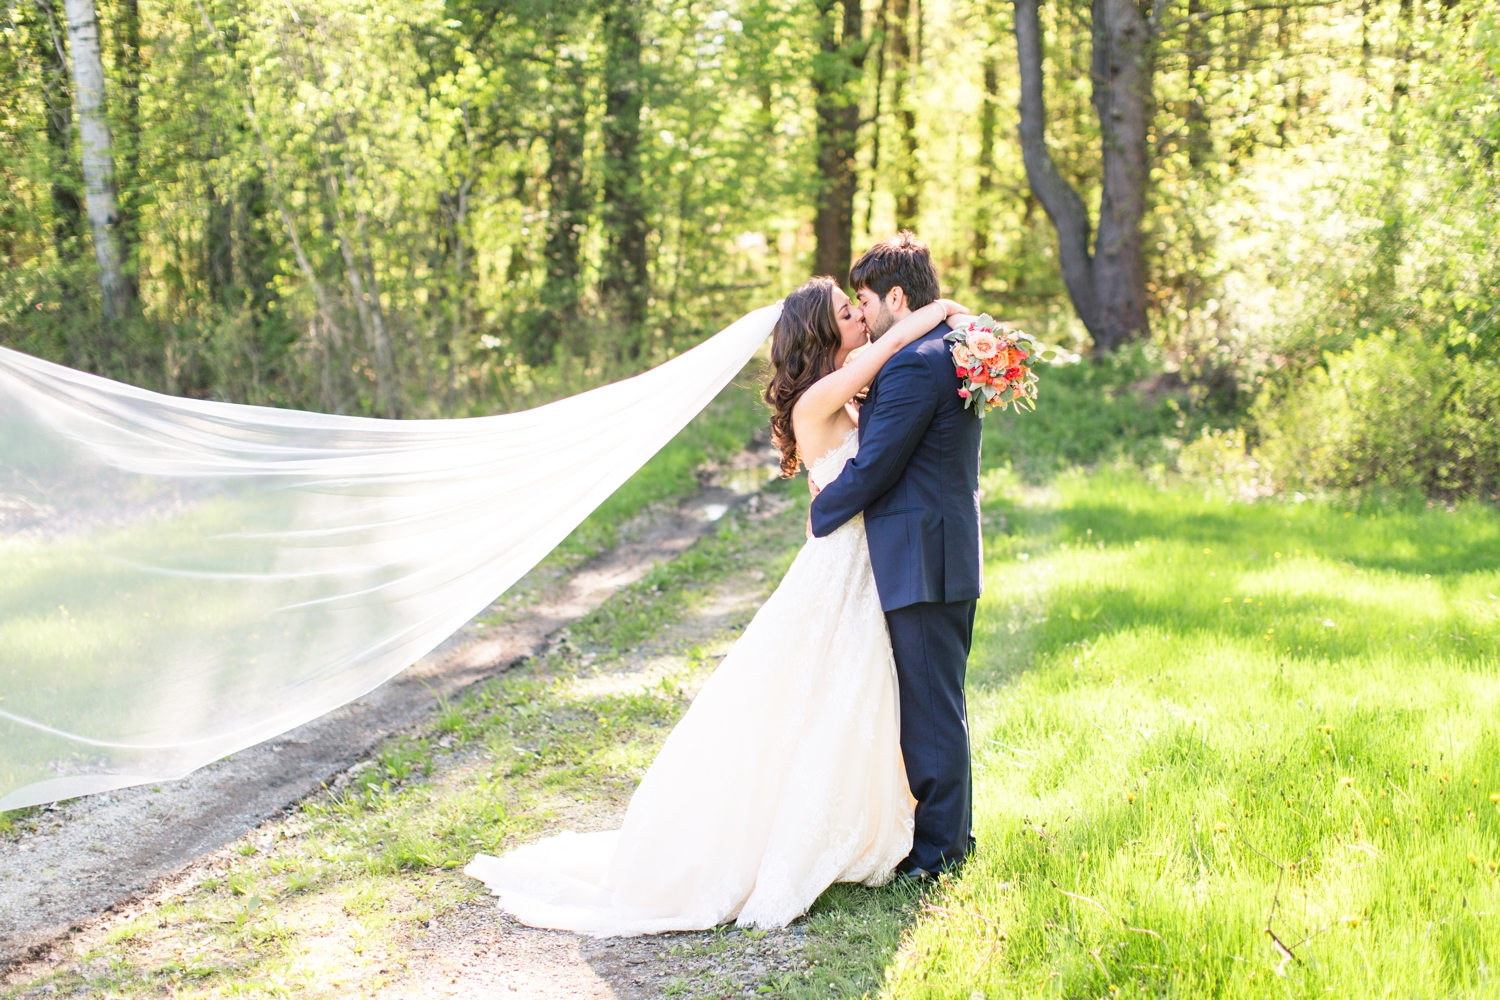 birch-hill-catering-wedding-castleton-on-hudson-ny-connecticut-photographer-shaina-lee-photography-photo